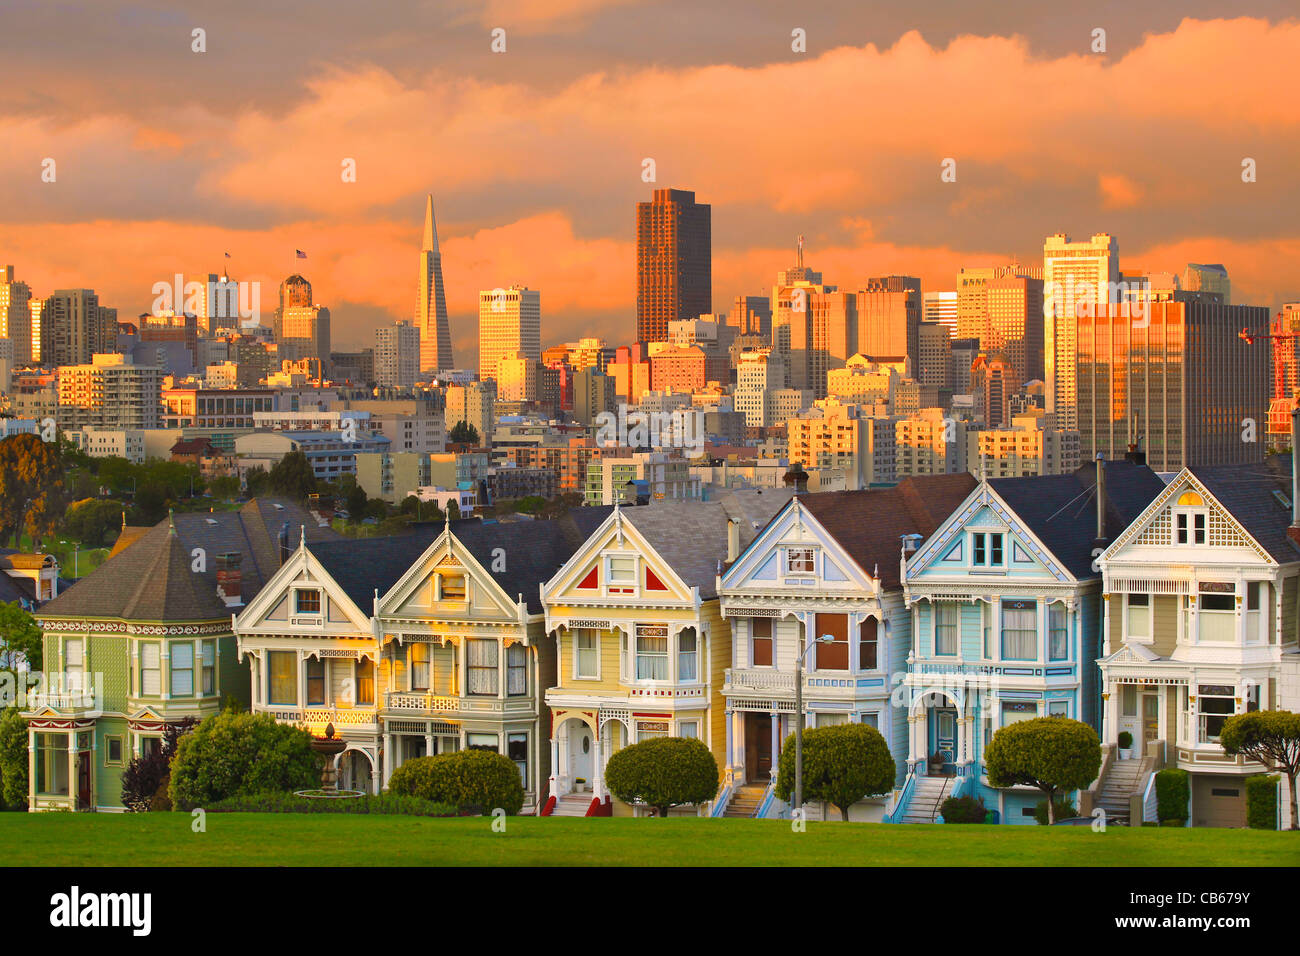 A stunning stormy sunset over Alamo Square's famous Painted Ladies, also known as Postcard Row or the Full House - Stock Image